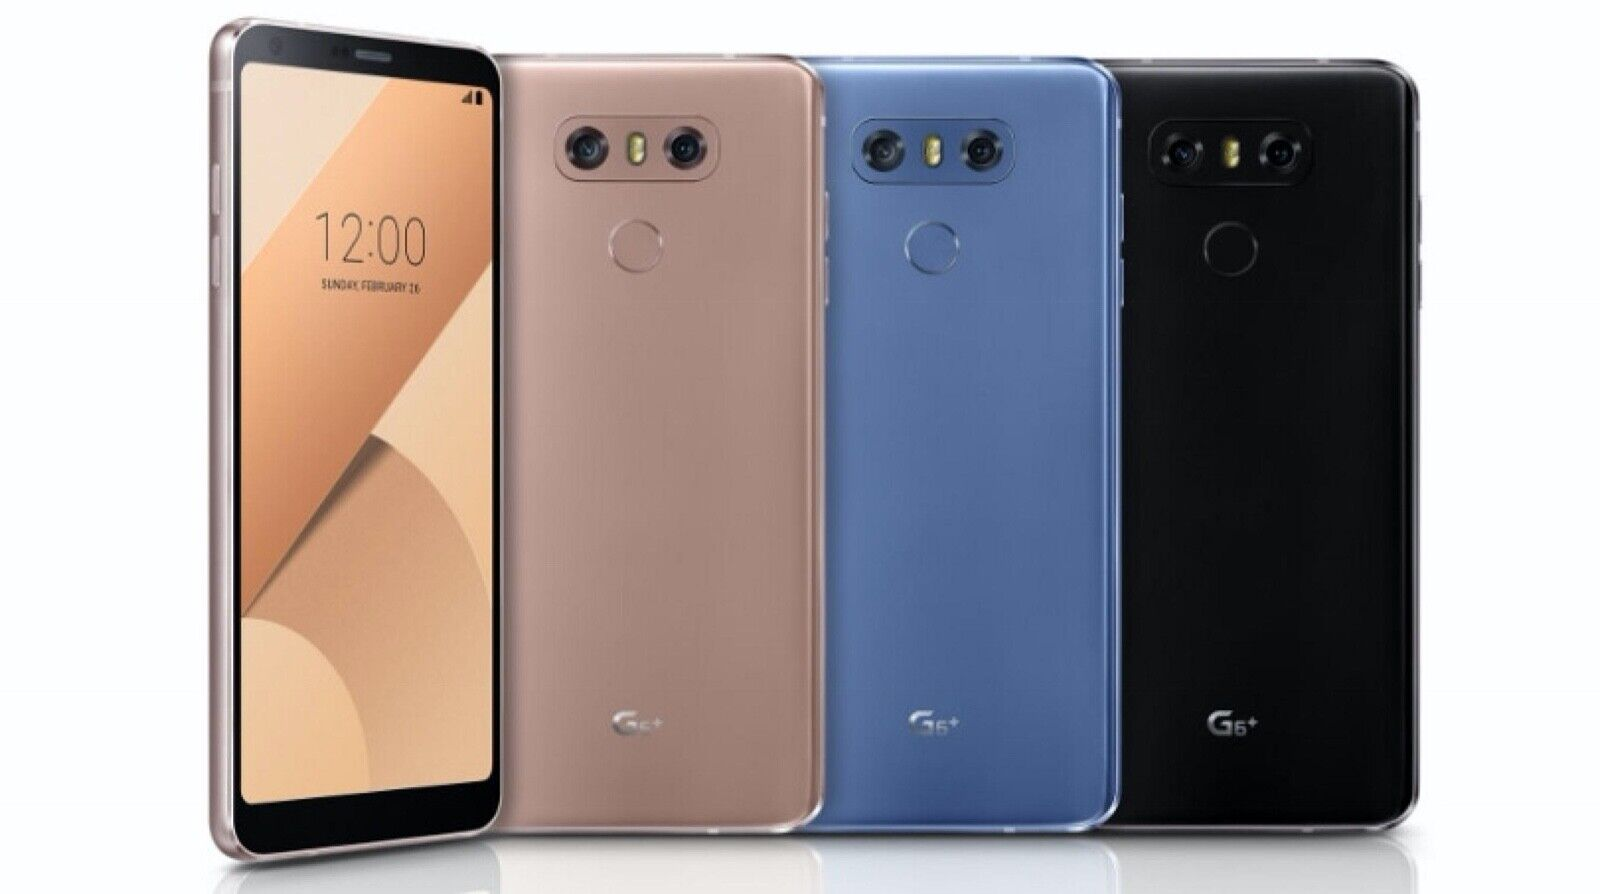 Android Phone - LG G6 H871 4G LTE 32GB AT&T / Unlocked Android Smartphone